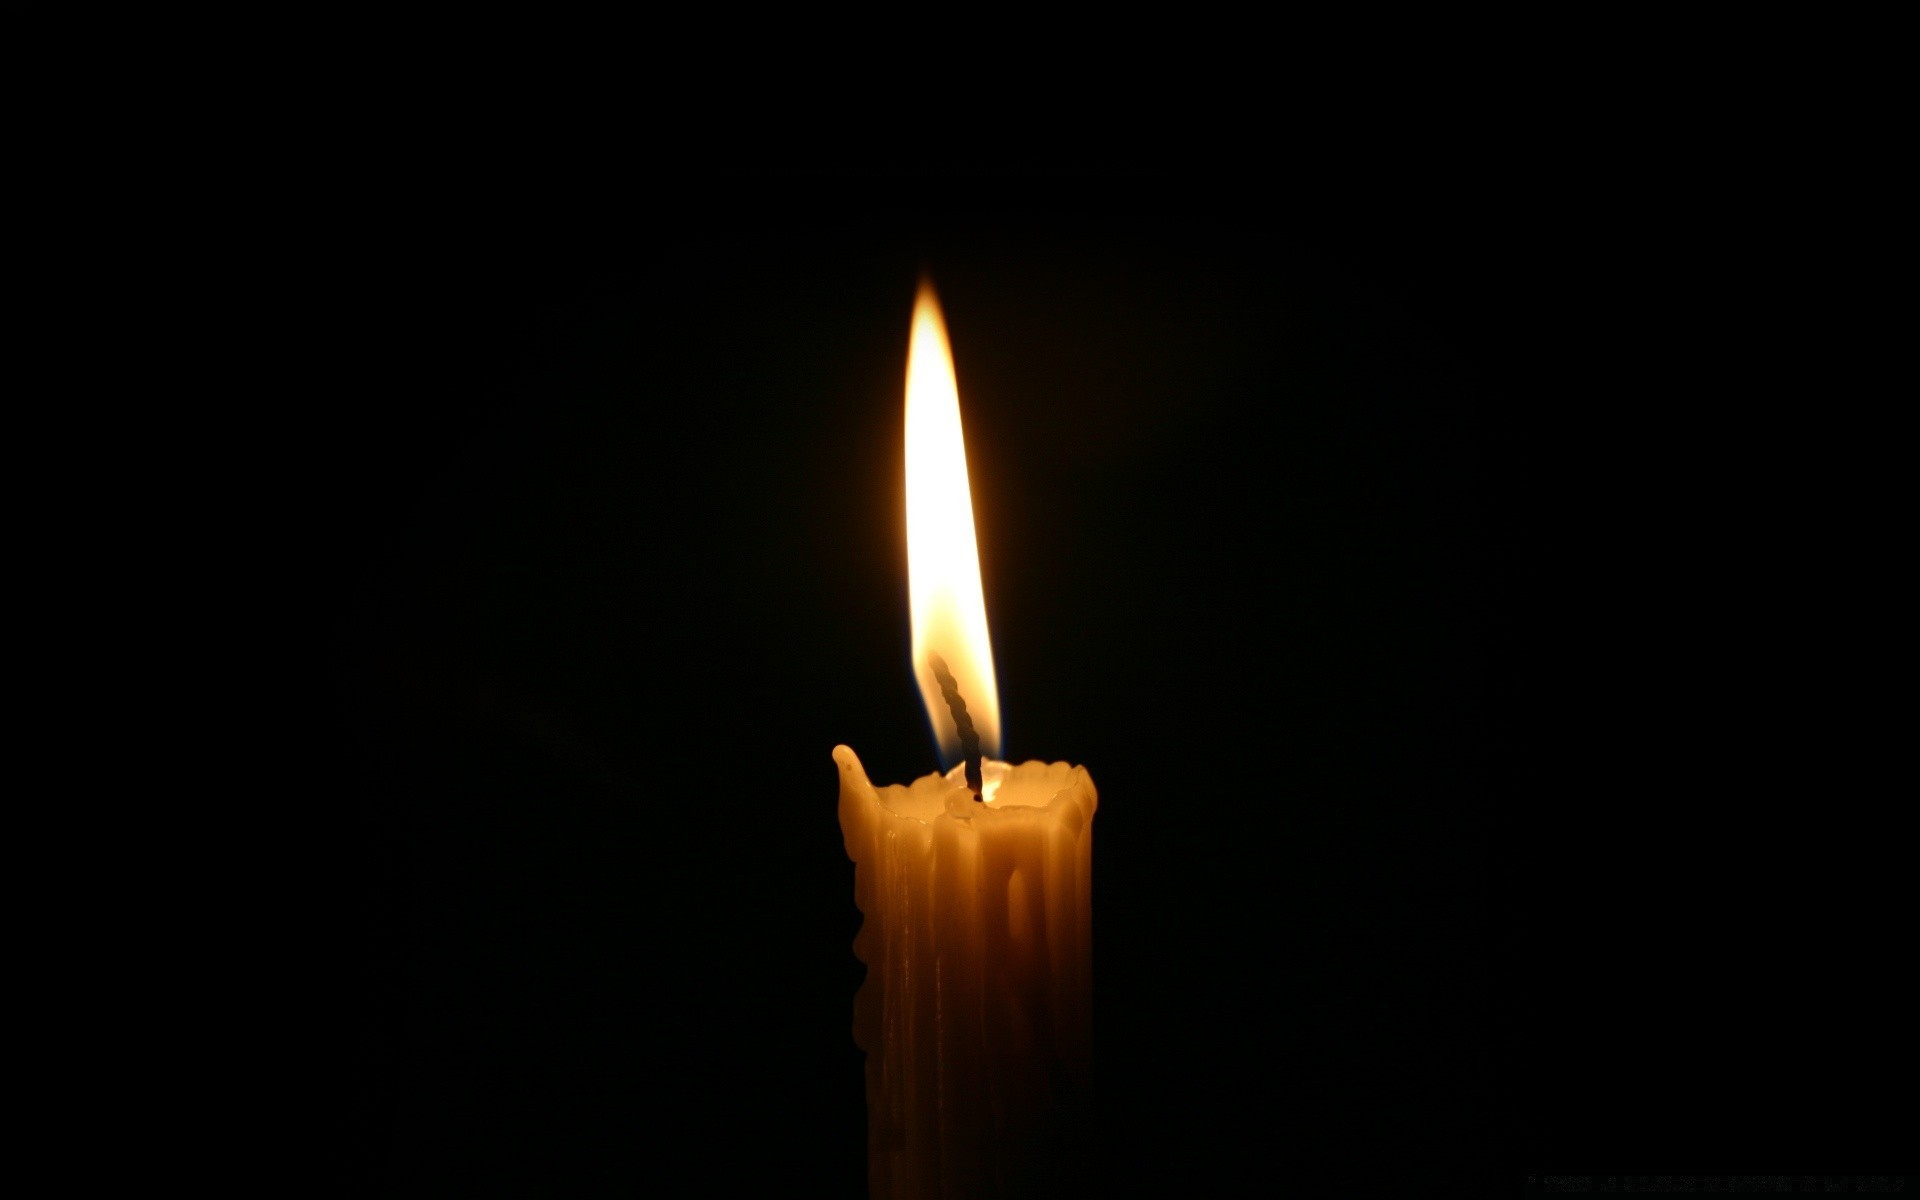 1920x1200 Black flame candle burnt wax dark candlelight christmas burn HD wallpaper.  Android wallpapers for free.